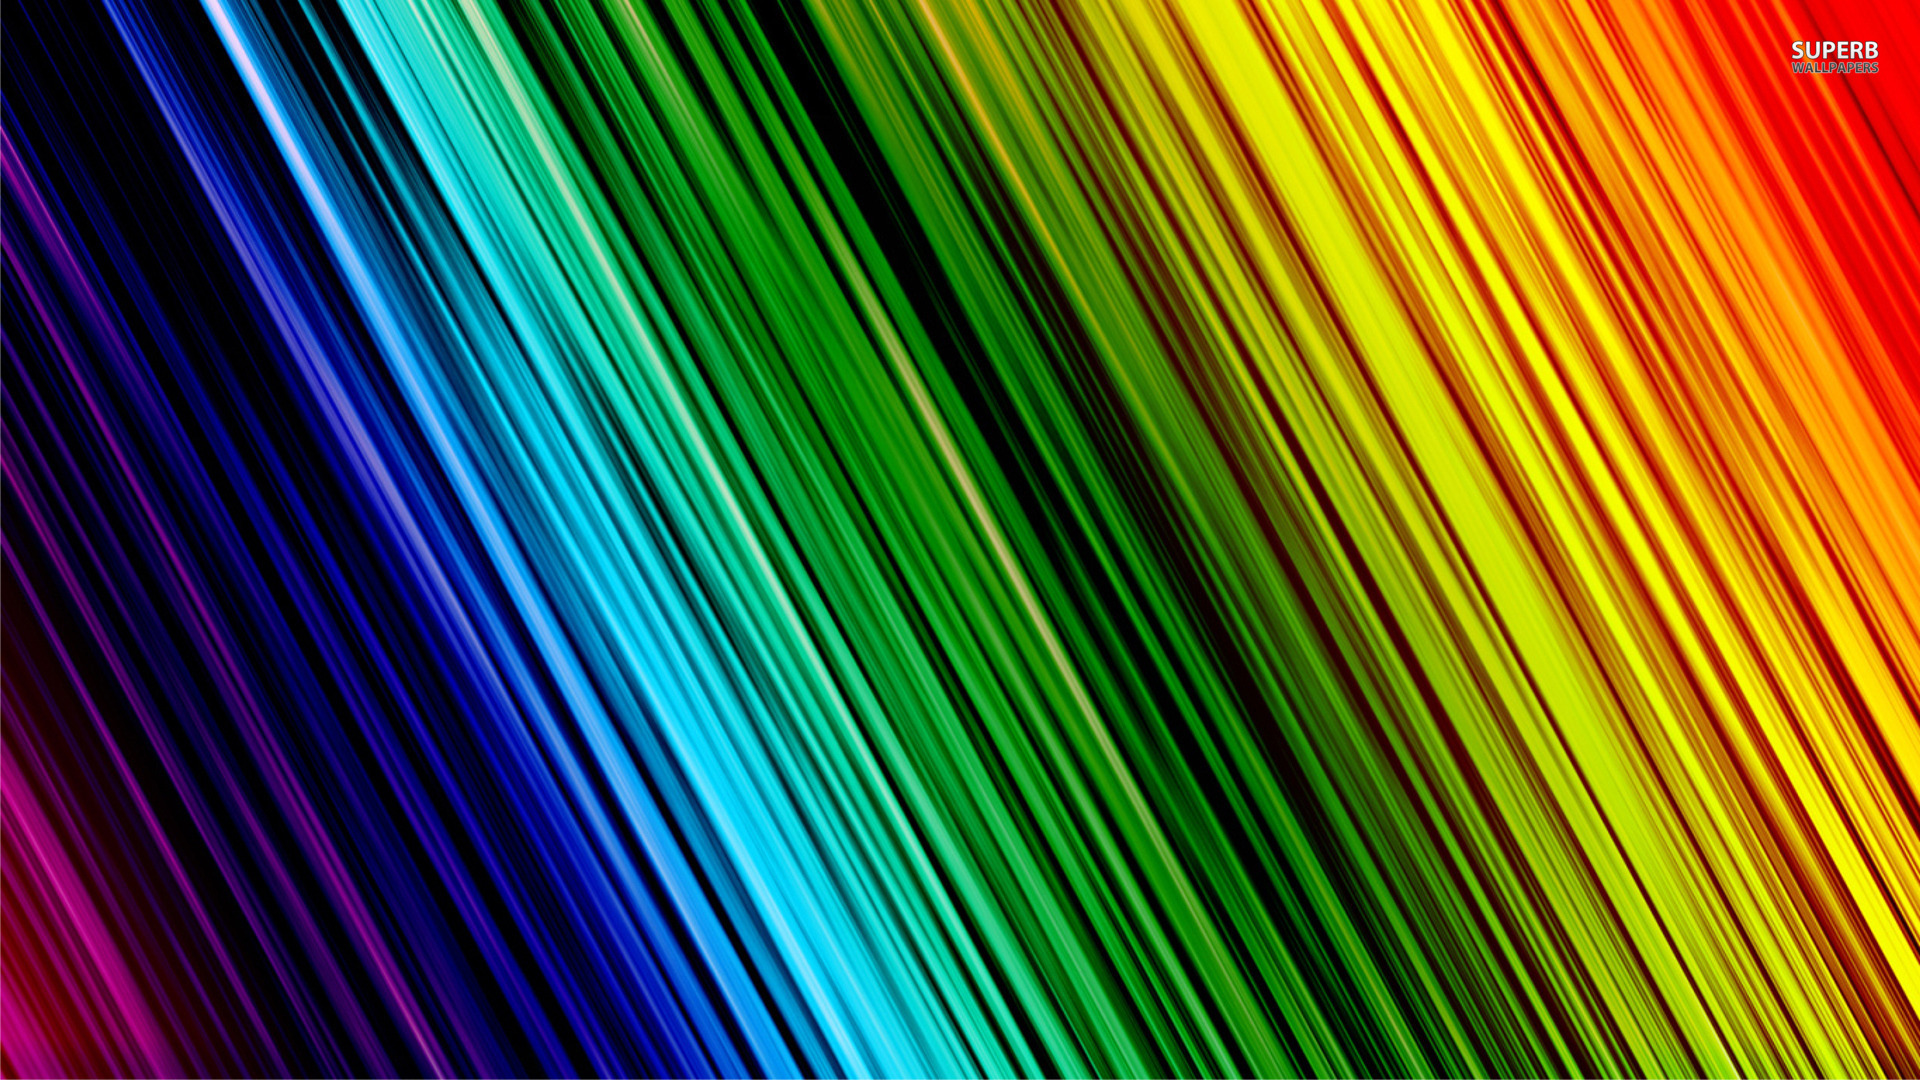 Wallpapers for Gt Neon Abstract Wallpaper. Neonwallpaperrainbowspin